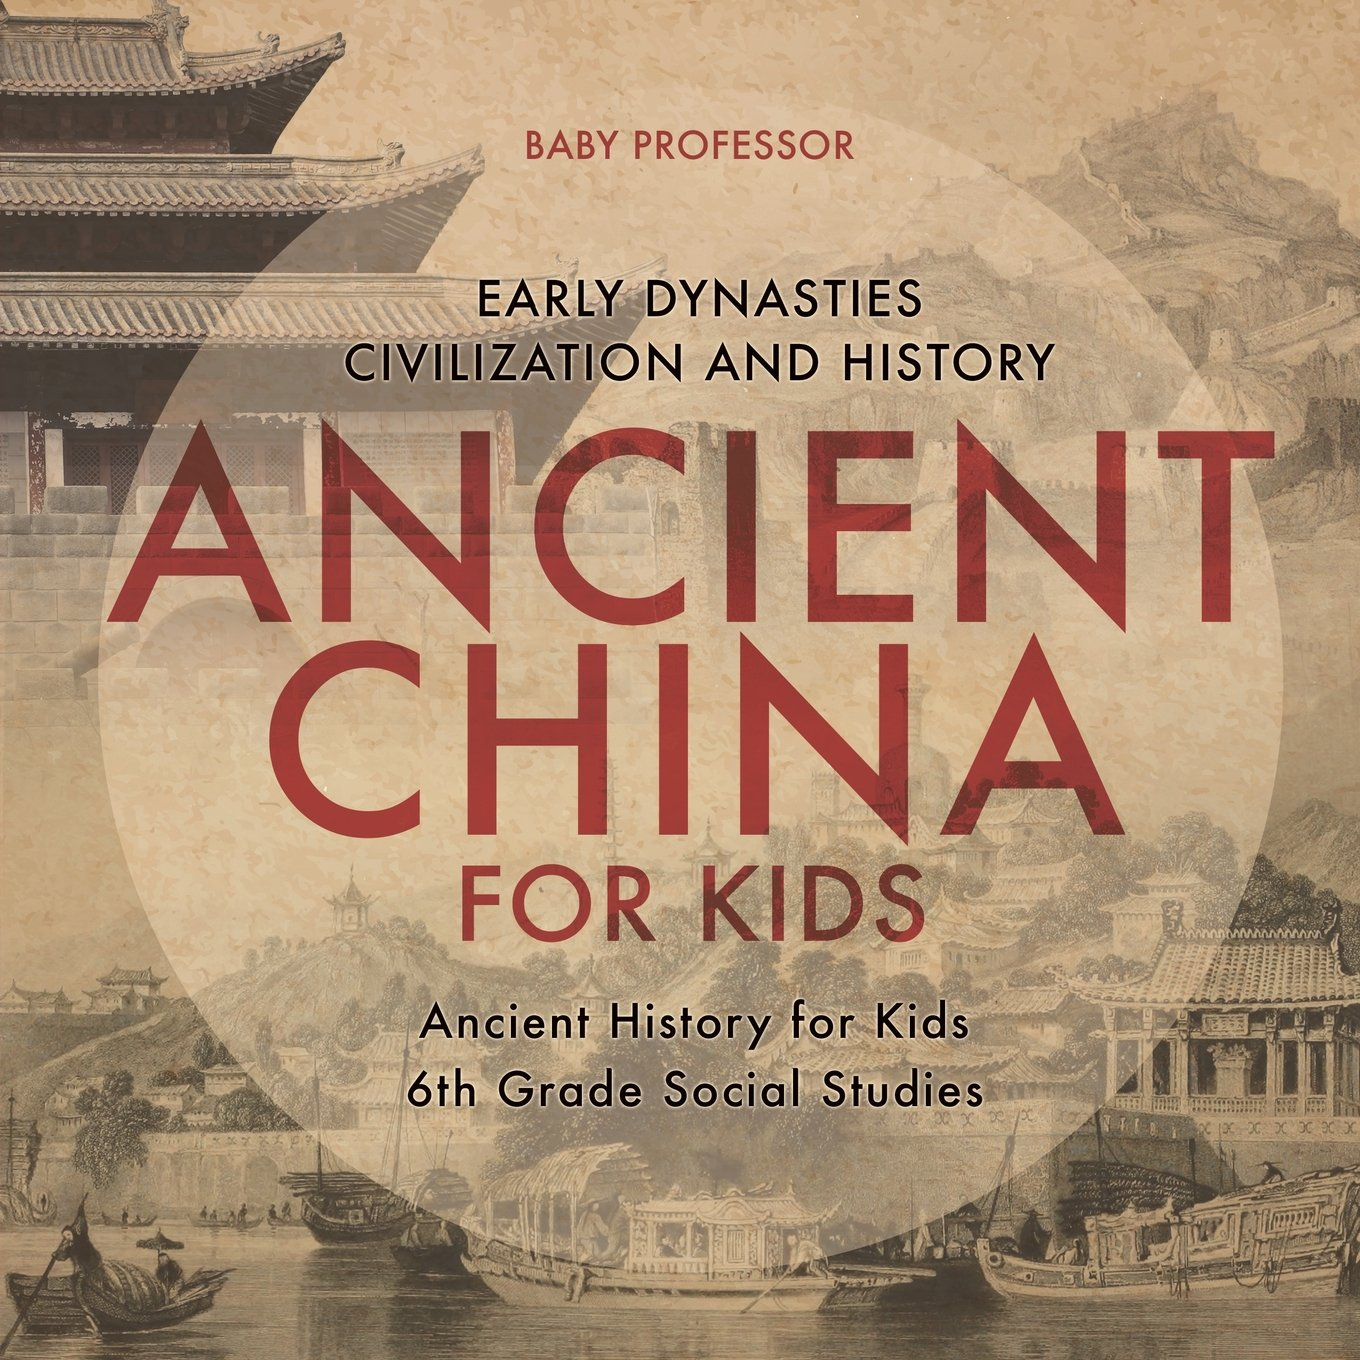 Read Online Ancient China for Kids - Early Dynasties, Civilization and History  Ancient History for Kids  6th Grade Social Studies PDF